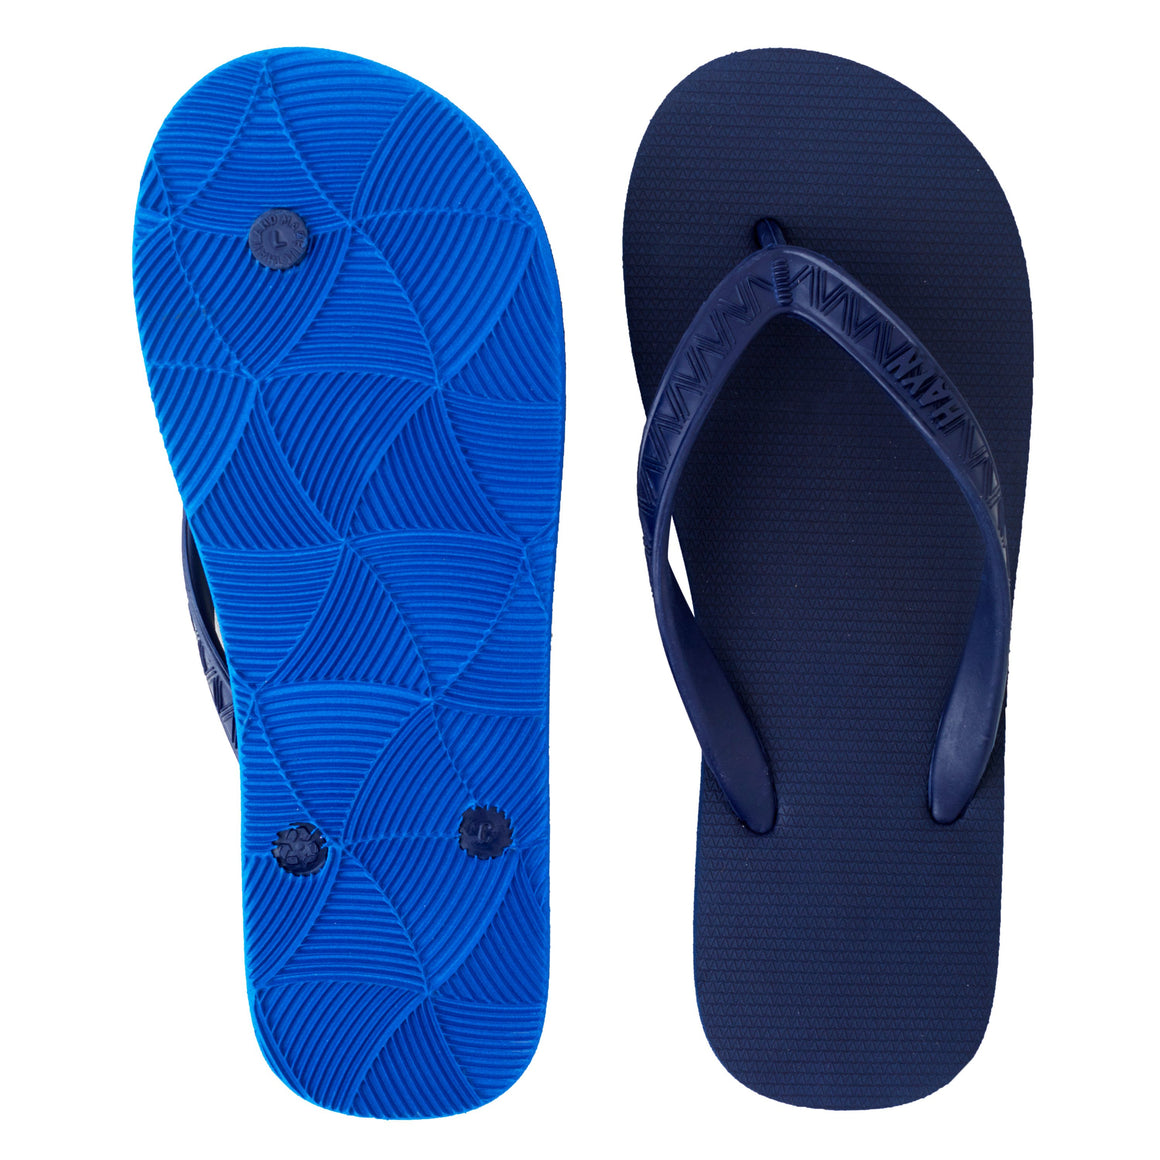 Flip - Flops - Hayn Tonal Collection Slippers - Makapu'u/Navy